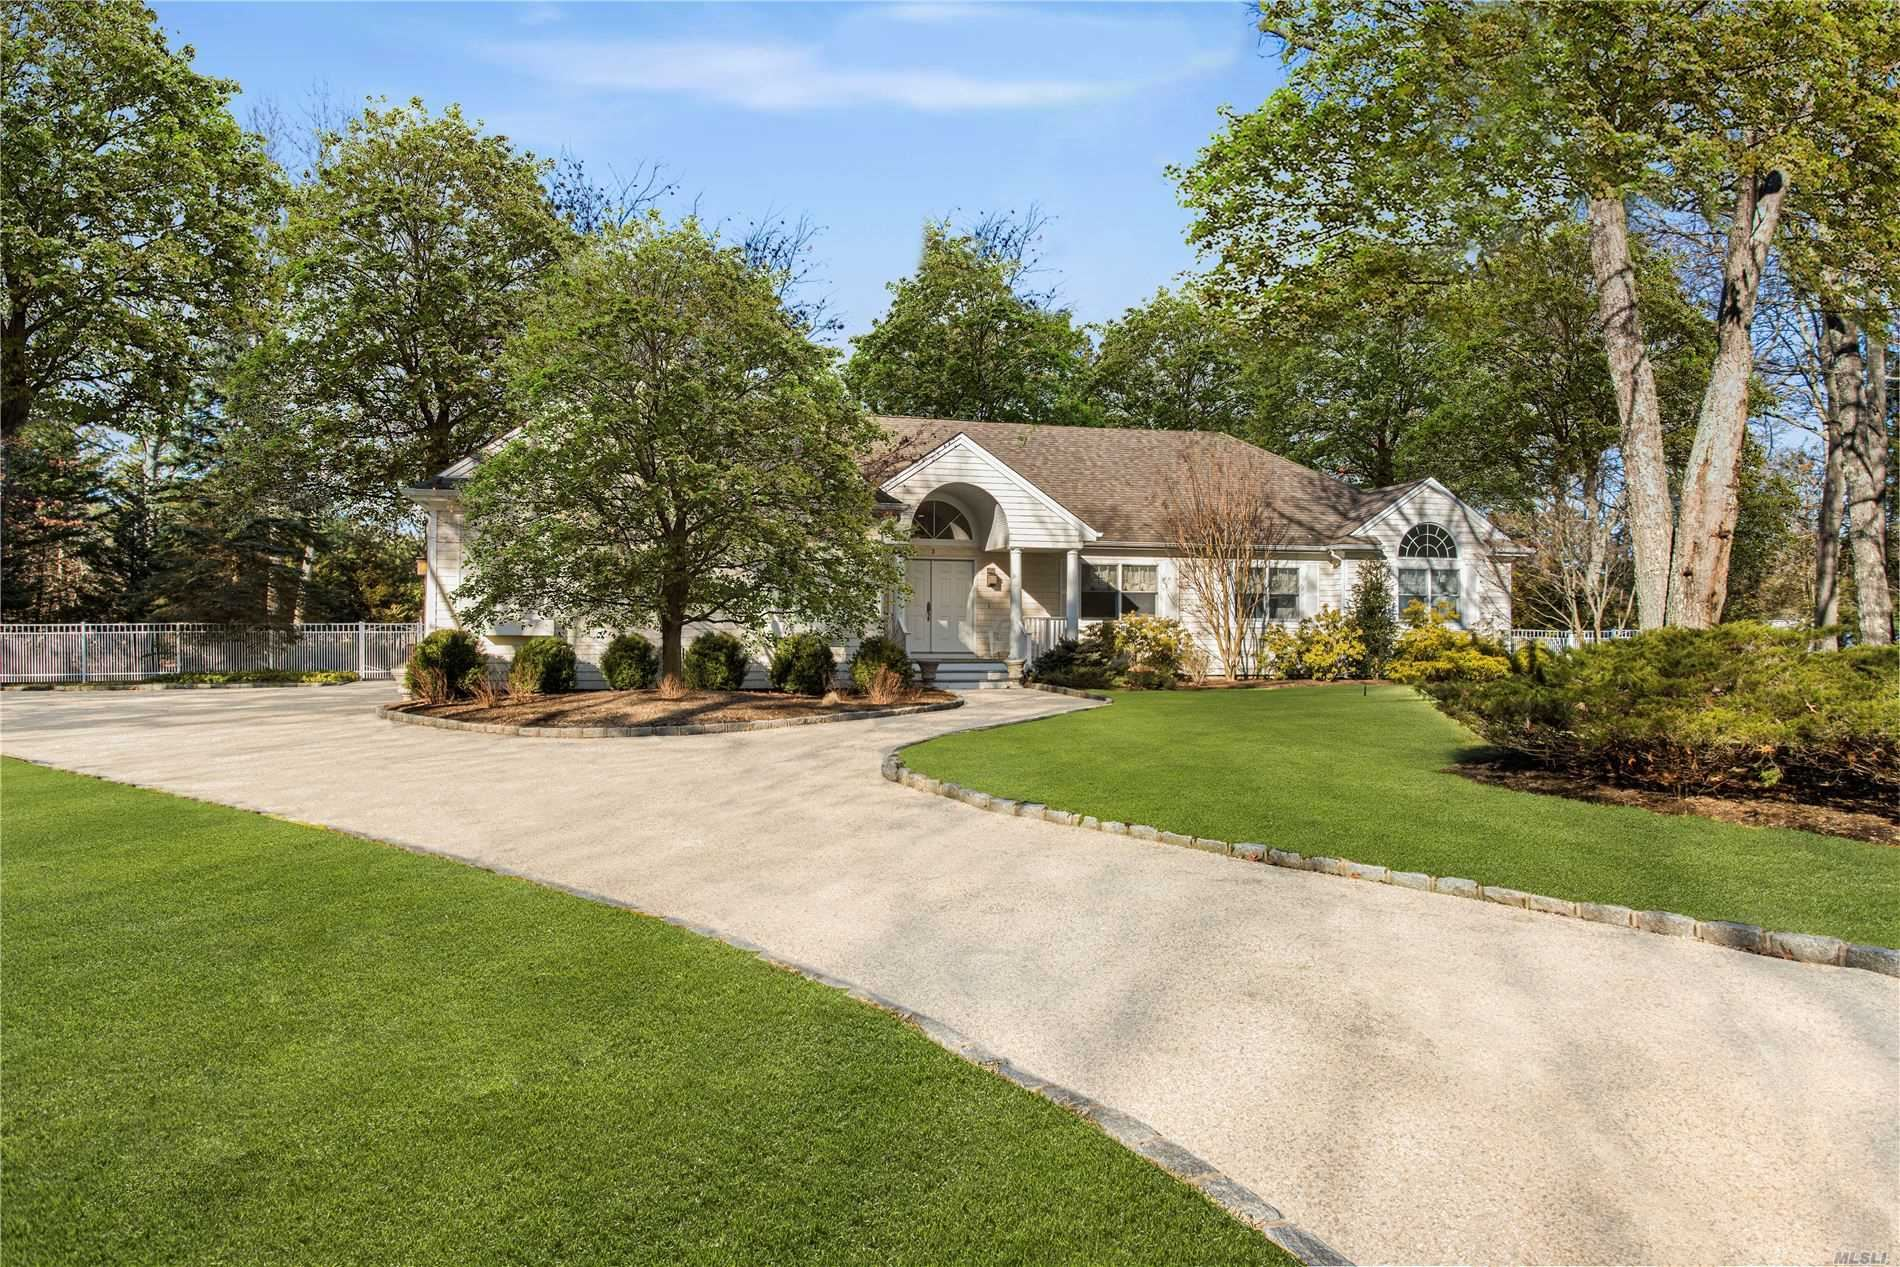 3 Old Fields Lane, Quogue, NY 11959 - MLS#: 3194485